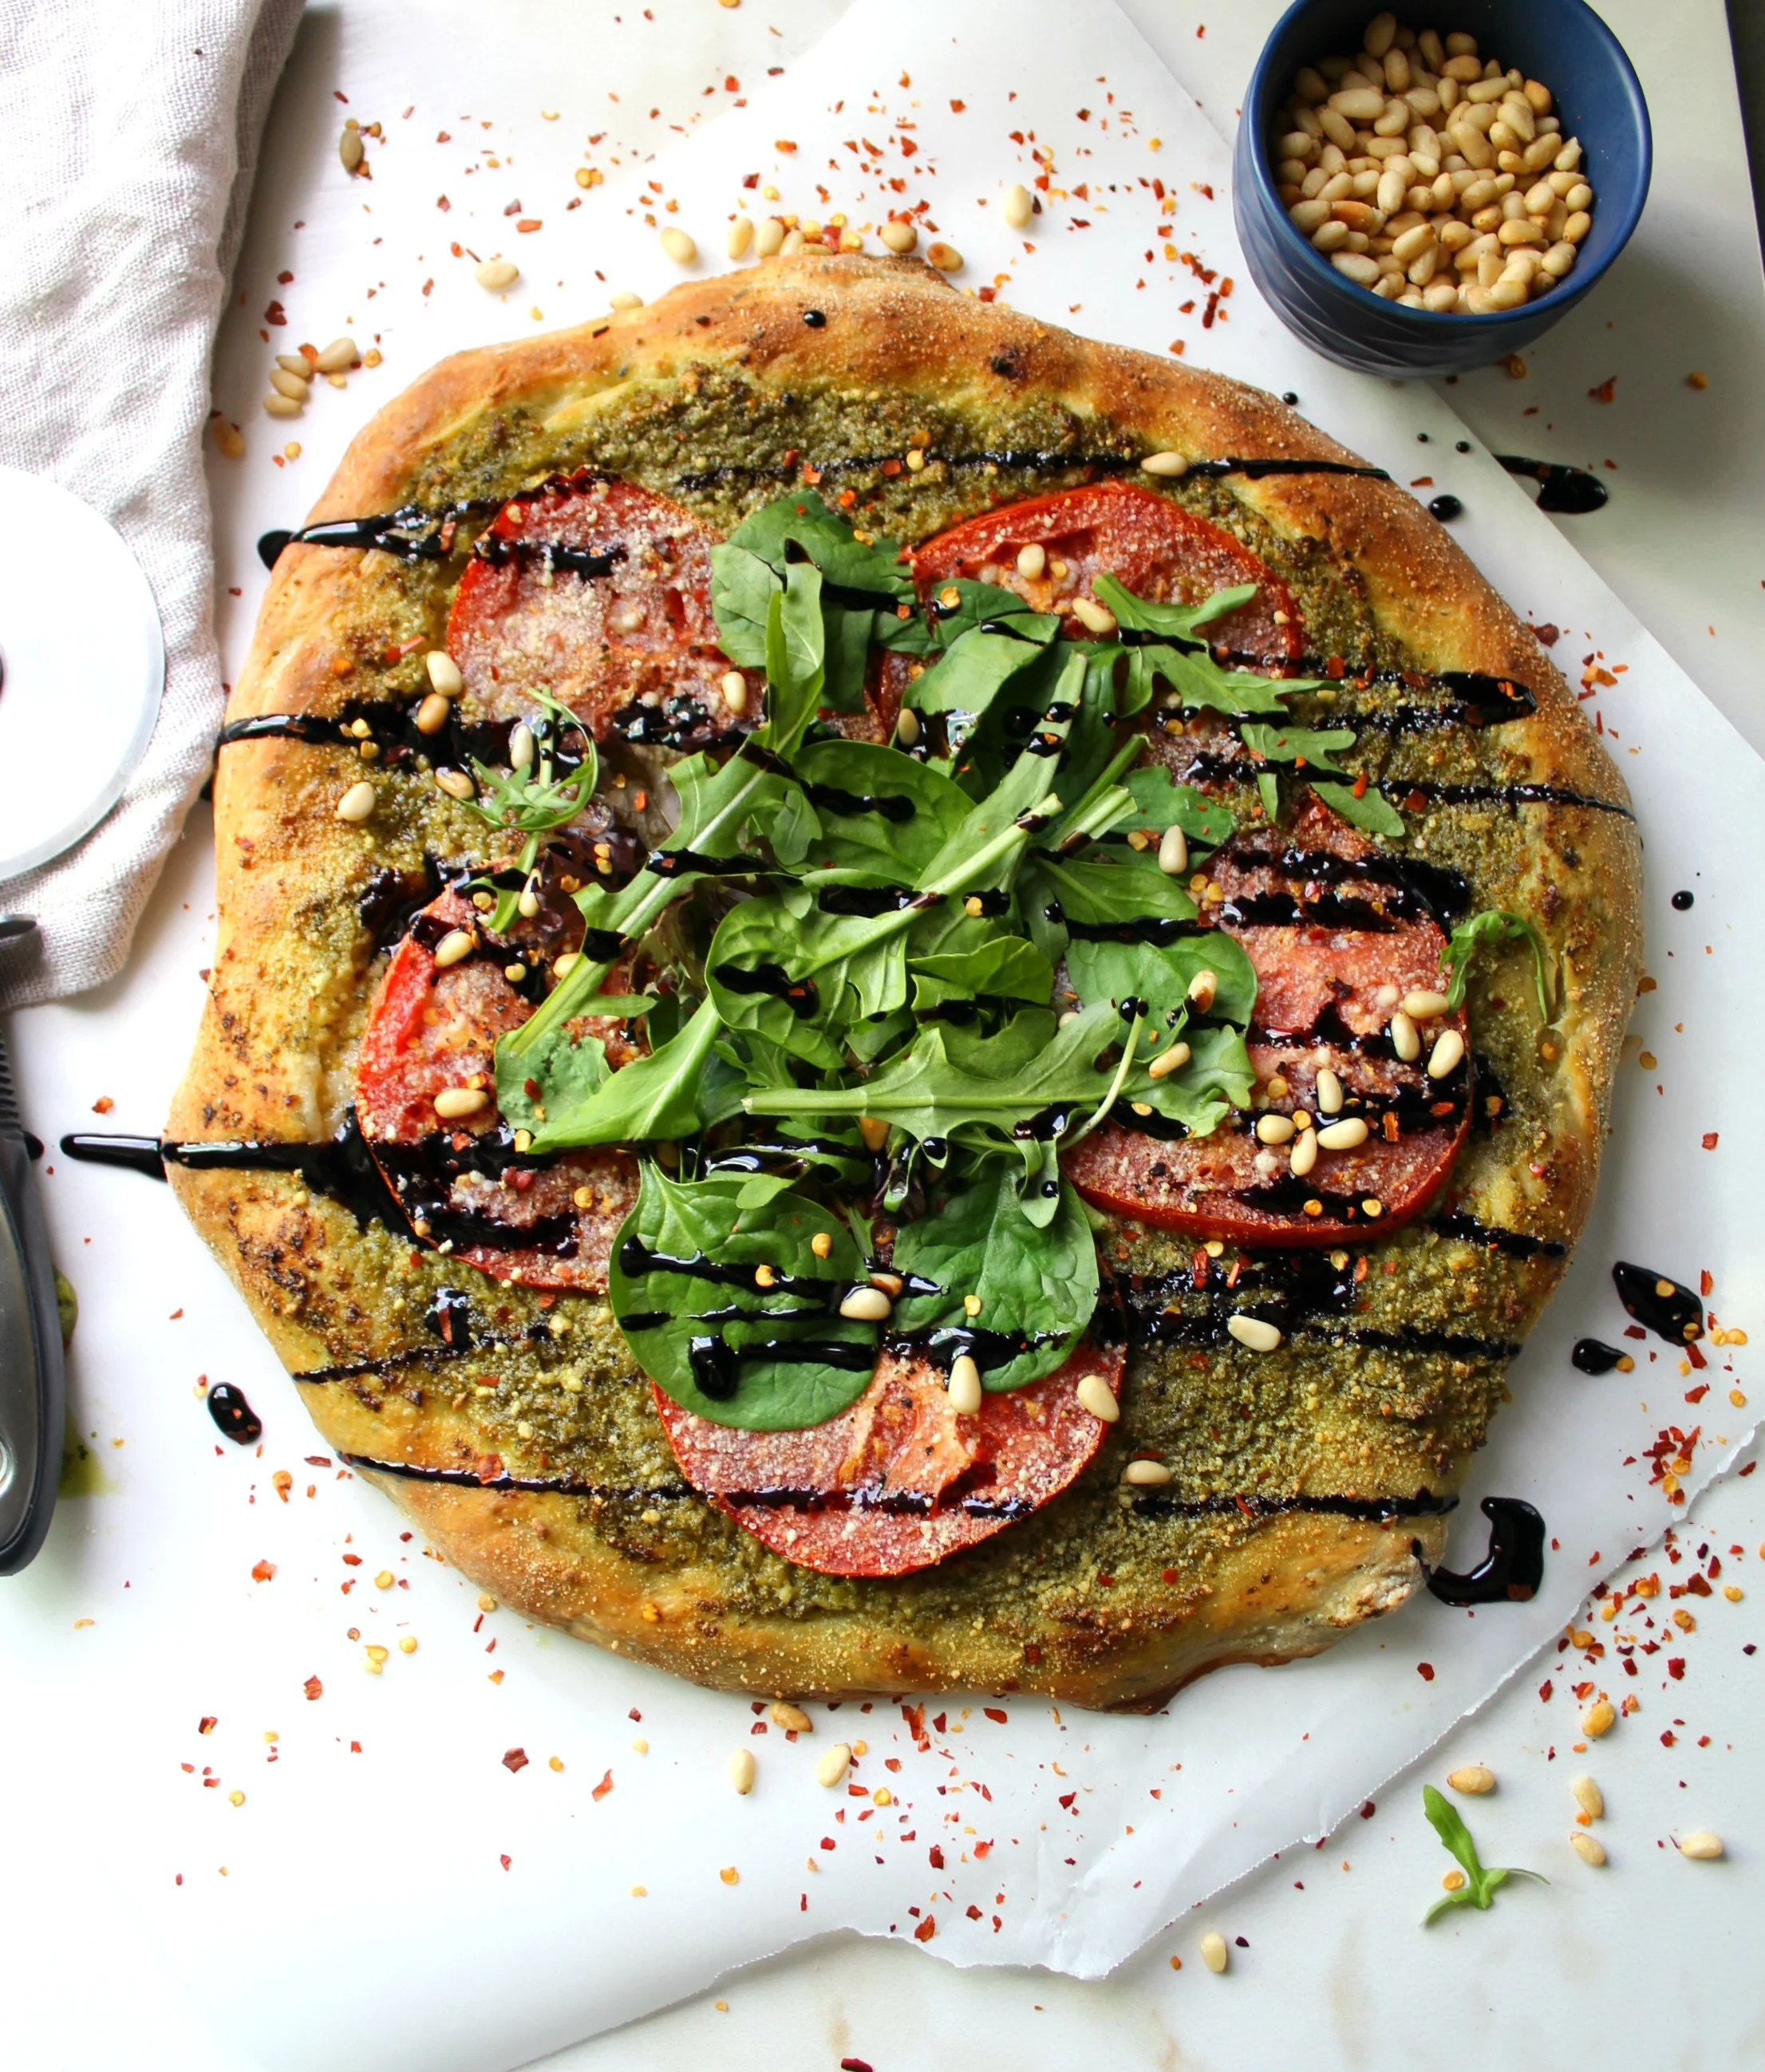 Vegan Pesto Pizza with Balsamic Glaze | ThisSavoryVegan.com